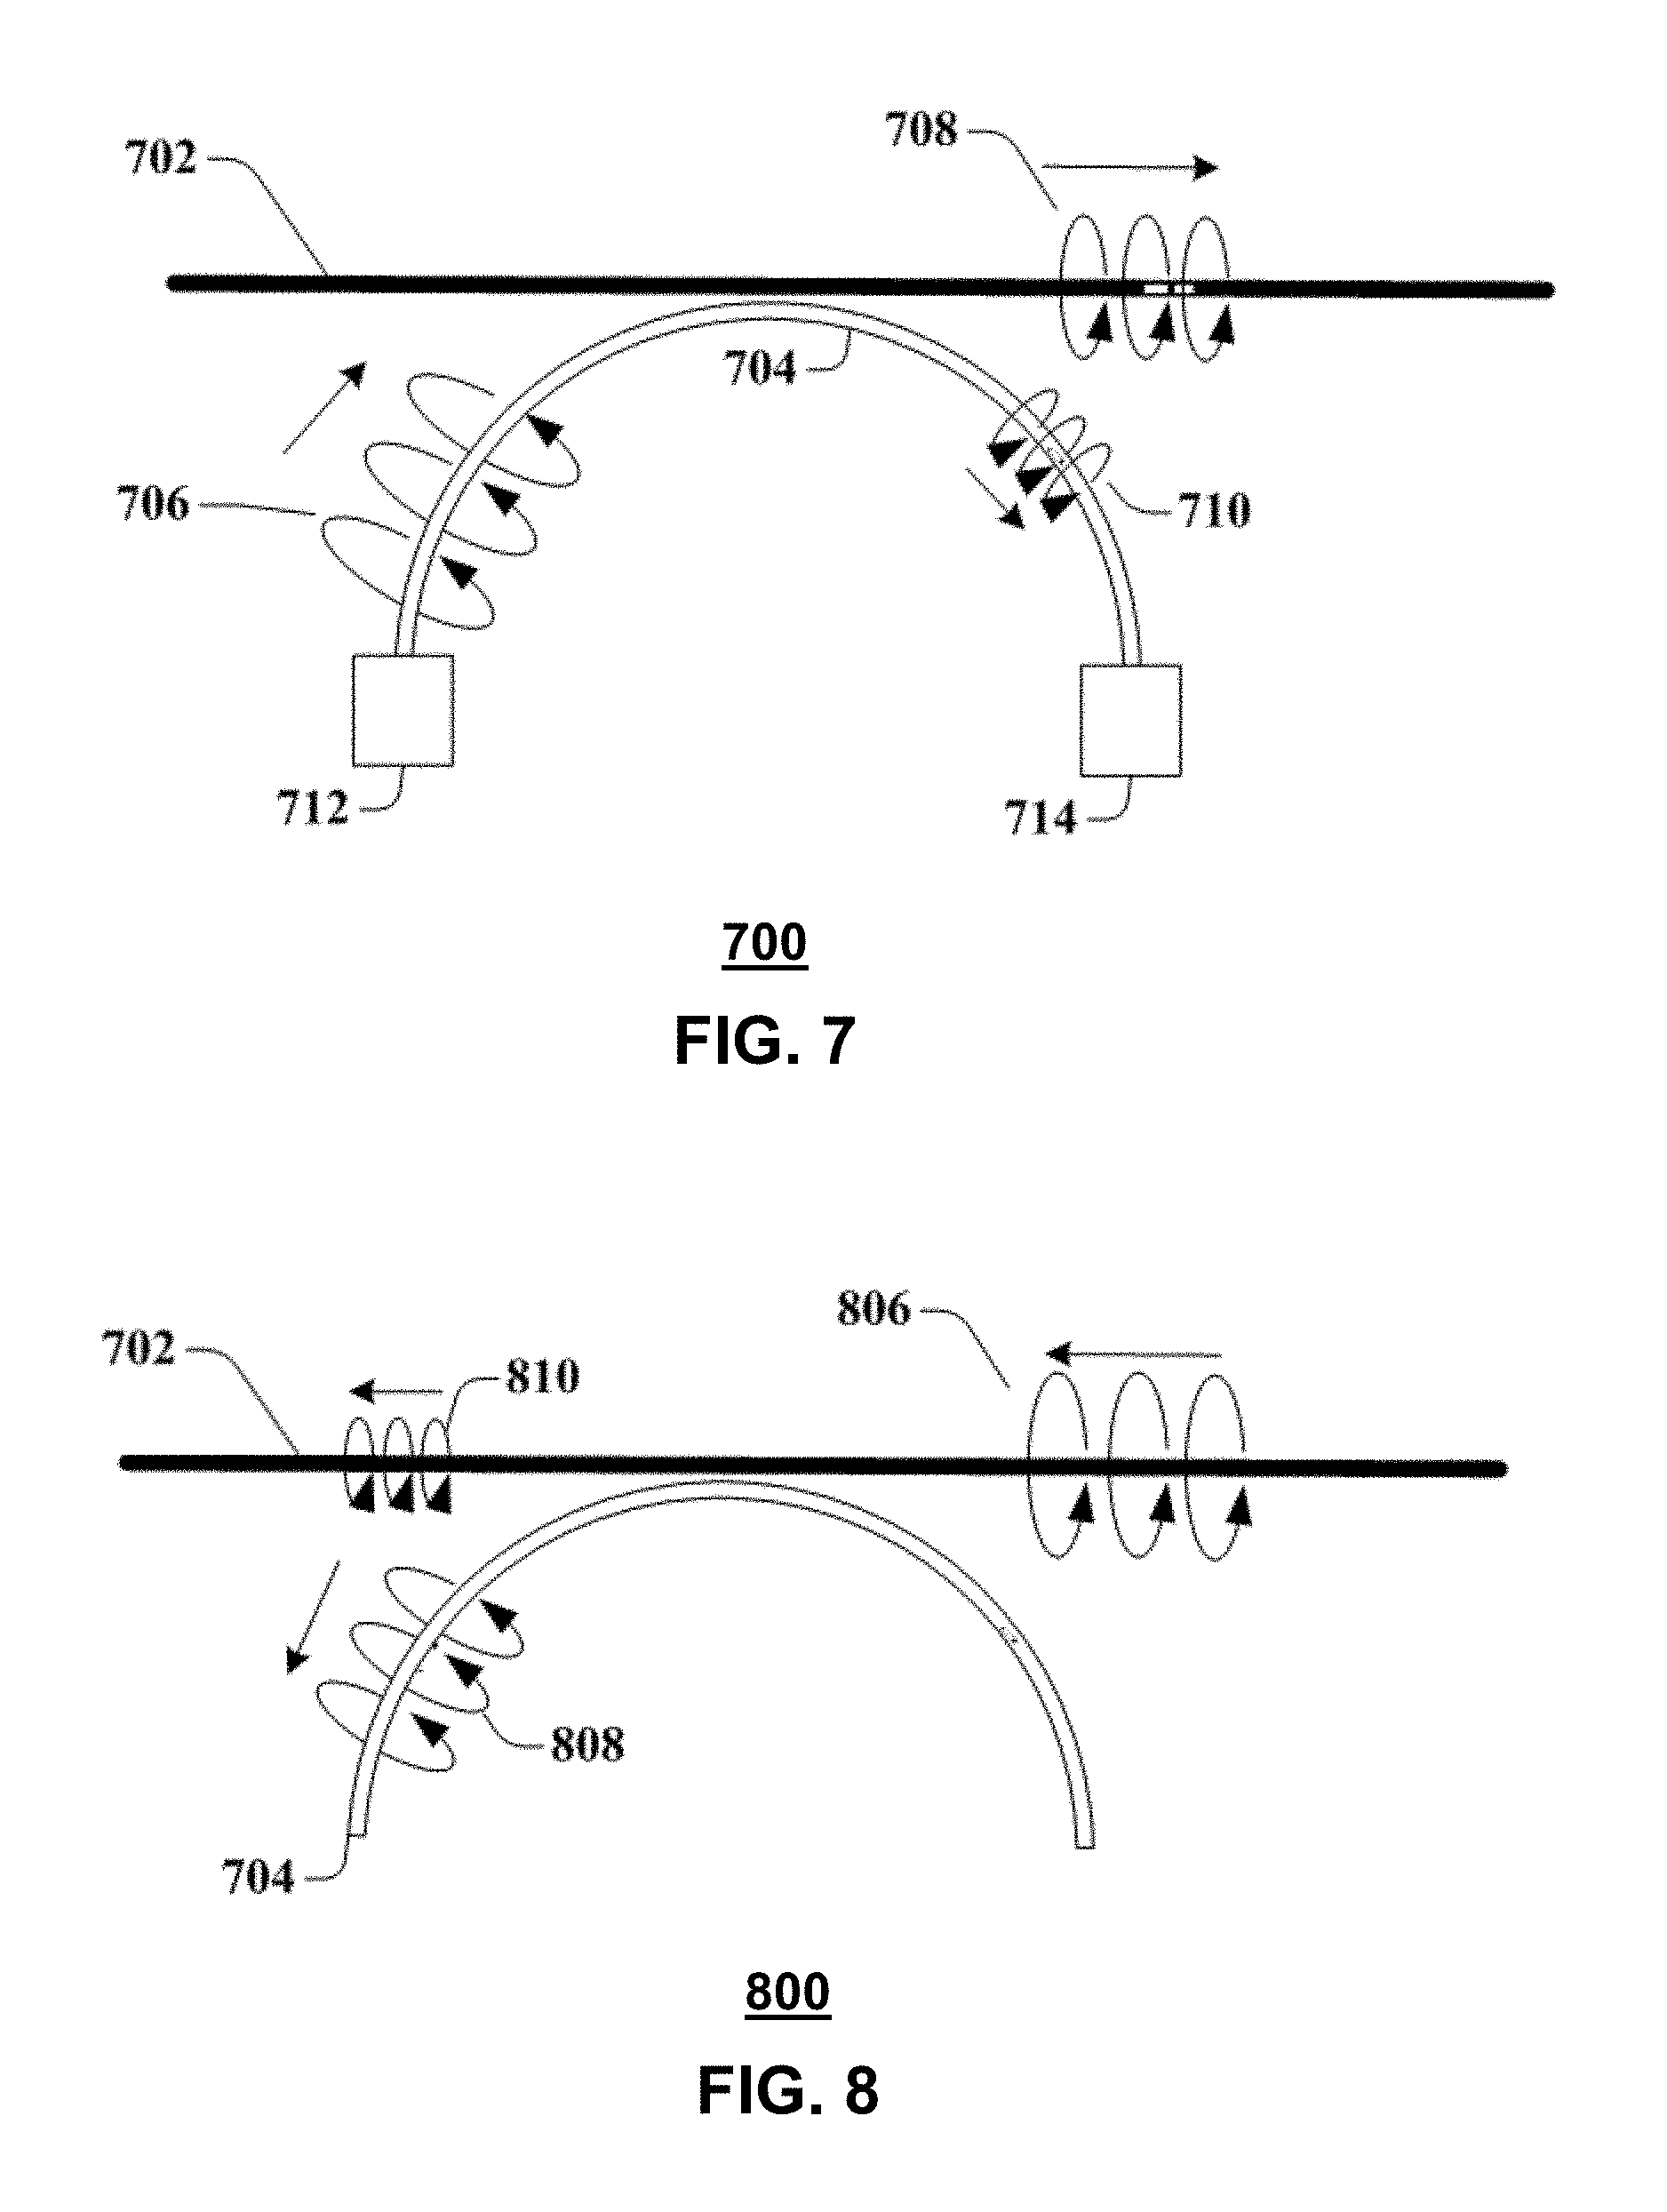 us9973940b1 apparatus and methods for dynamic impedance matching 40 Meter QRP Transceiver Kit us9973940b1 apparatus and methods for dynamic impedance matching of a guided wave launcher patents